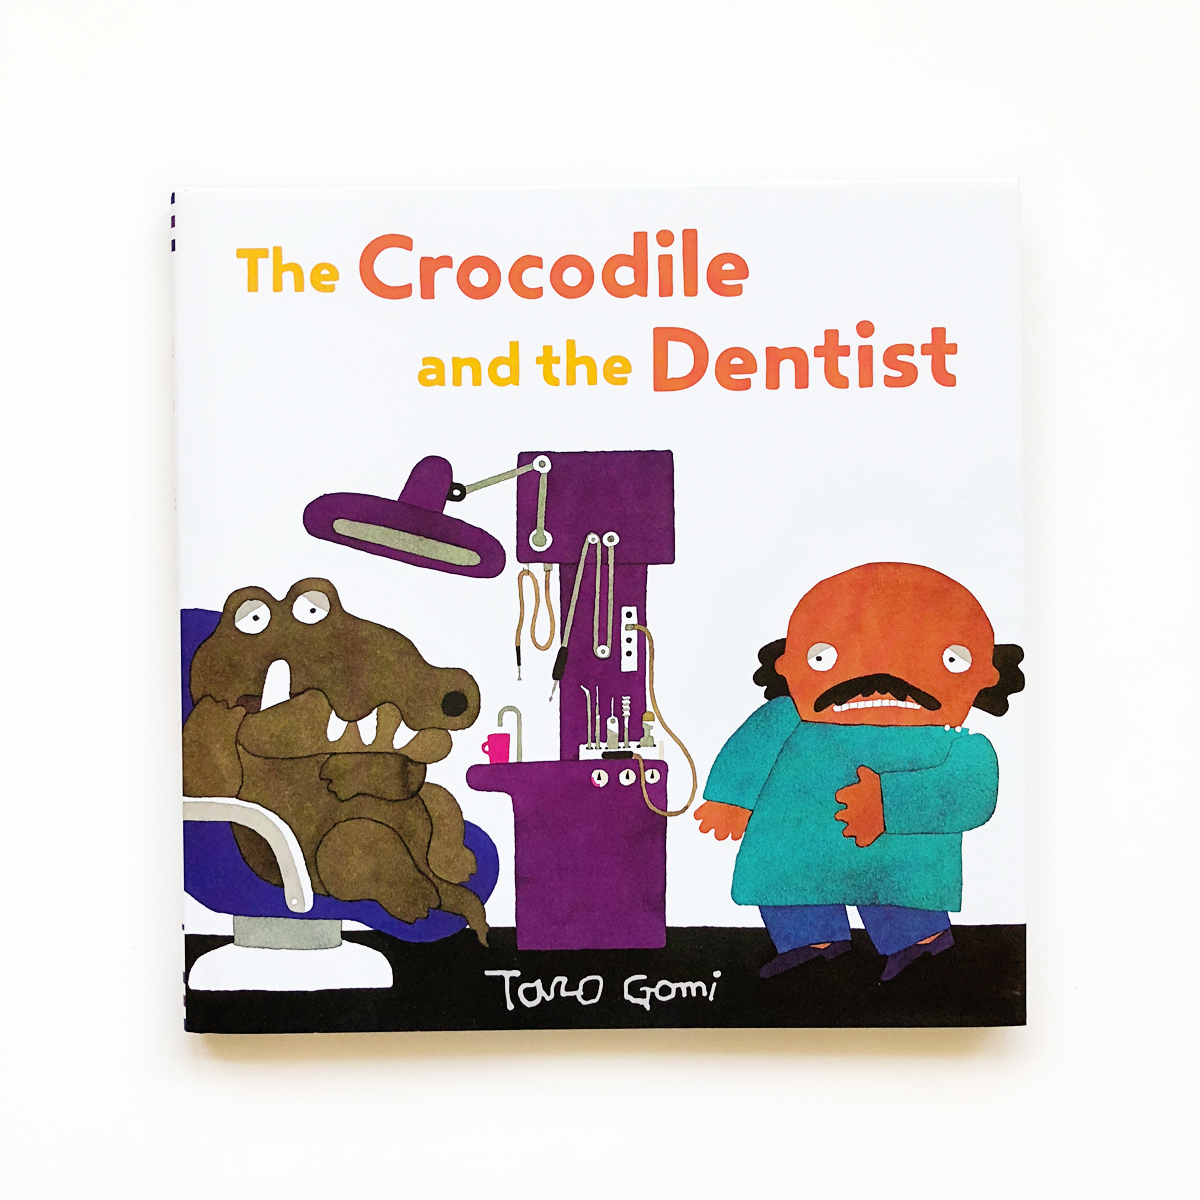 The Crocodile and the Dentist.jpg